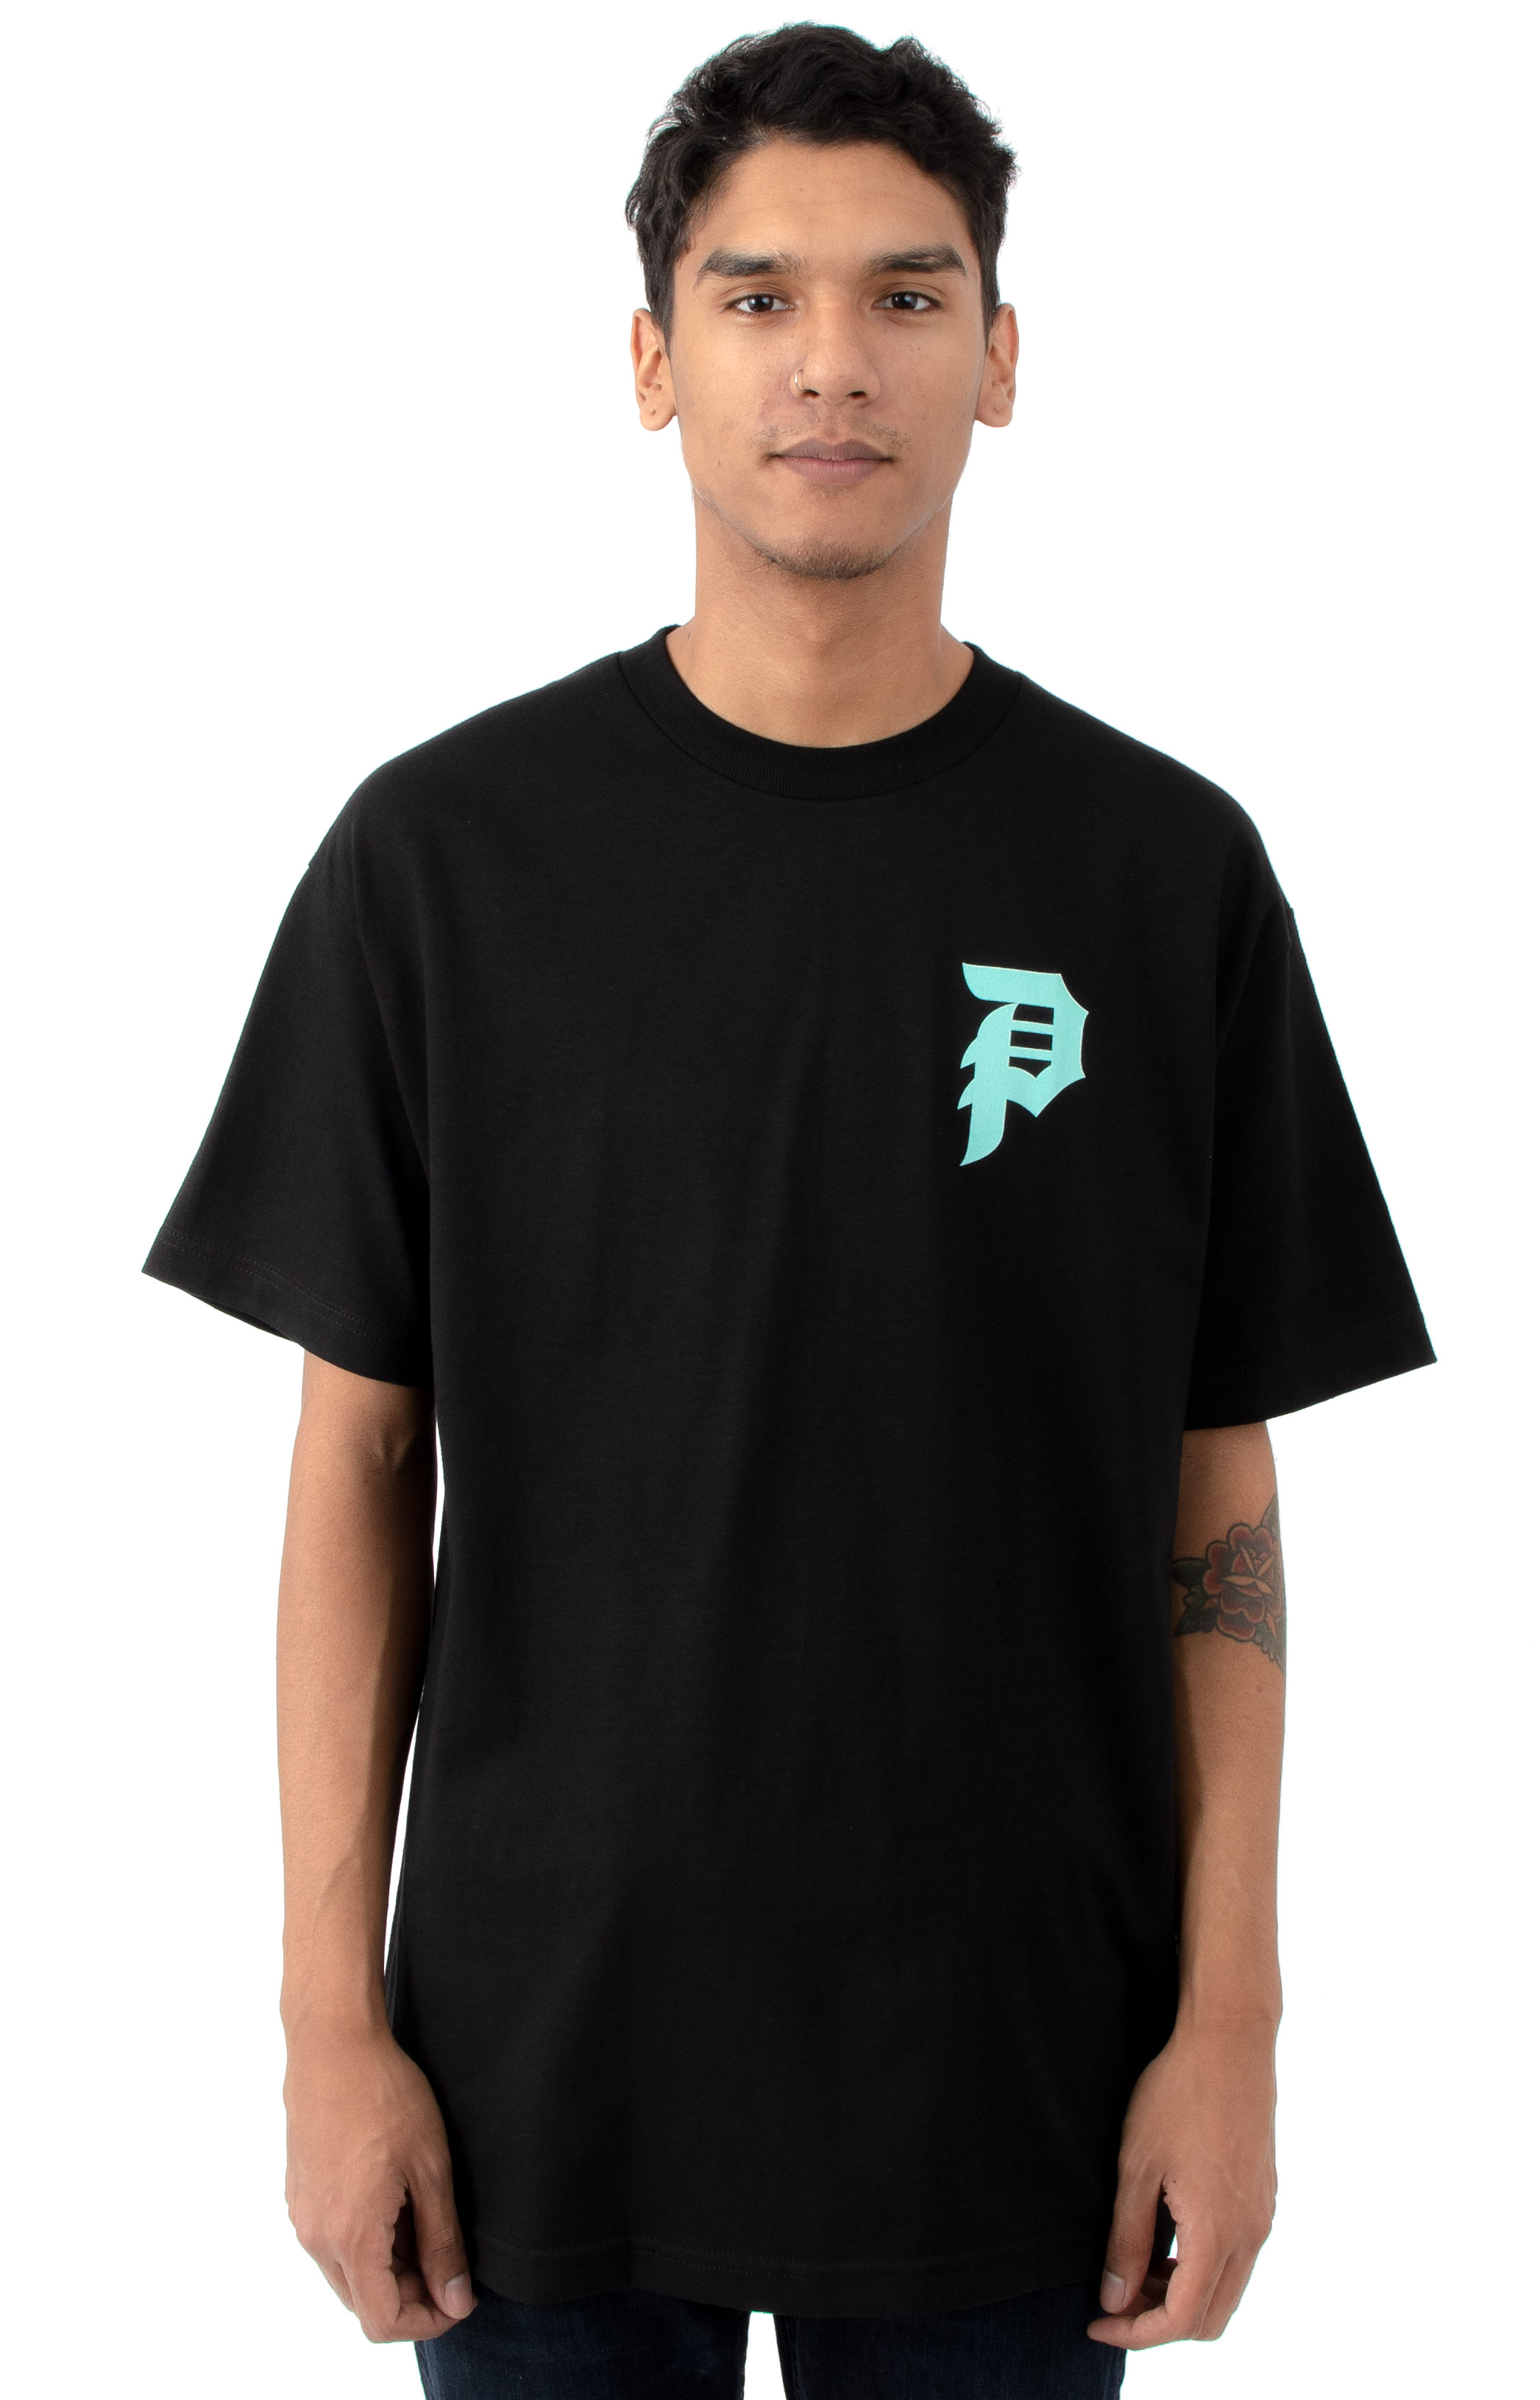 Dirty P T-Shirt - Black